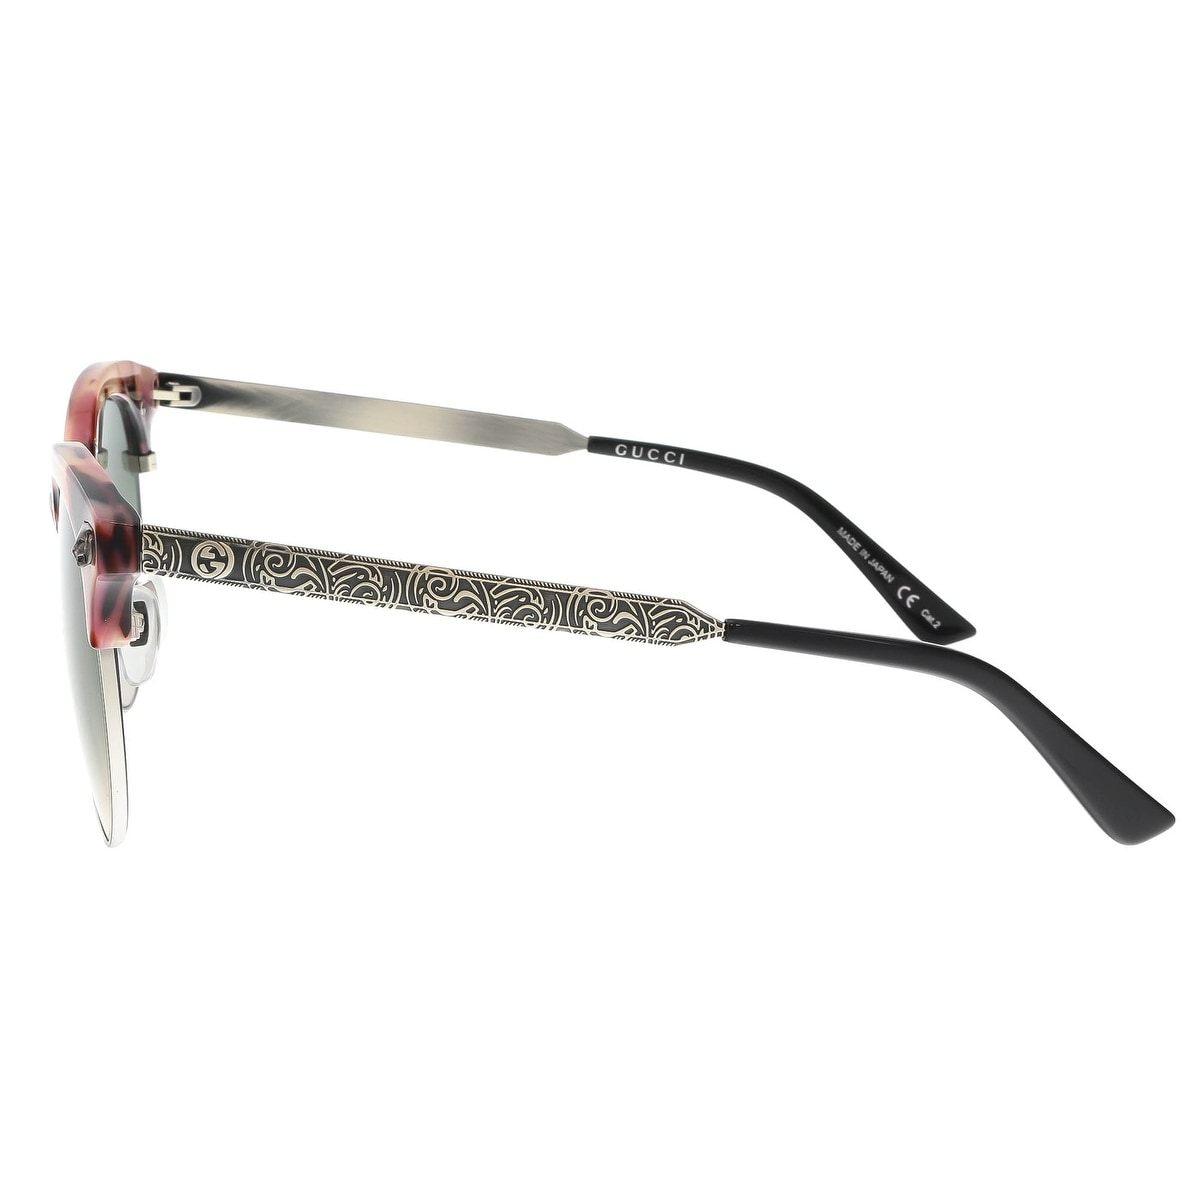 30c973e4893 Shop GUCCI GG0222SK 005 Rose Silver Cat Eye Sunglasses - Free Shipping  Today - Overstock - 19421933